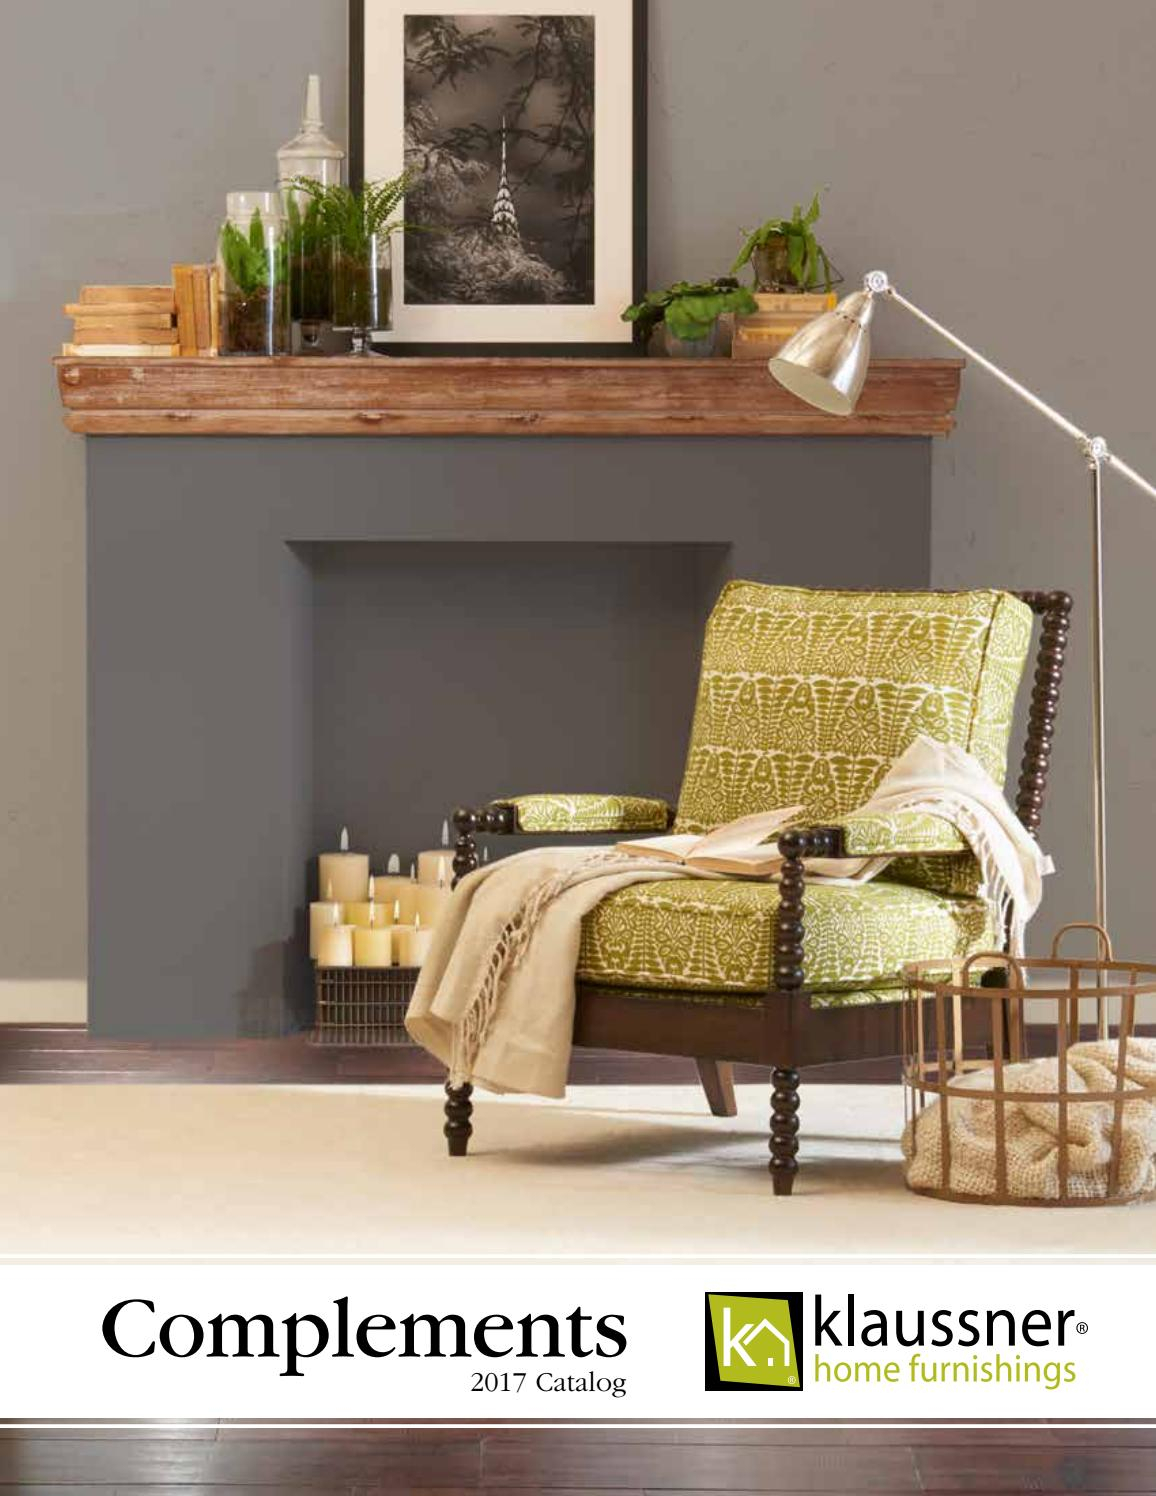 Complements Catalog 110617Klaussner Home Furnishings – Issuu With Bailey Angled Track Arm Swivel Gliders (Image 8 of 25)